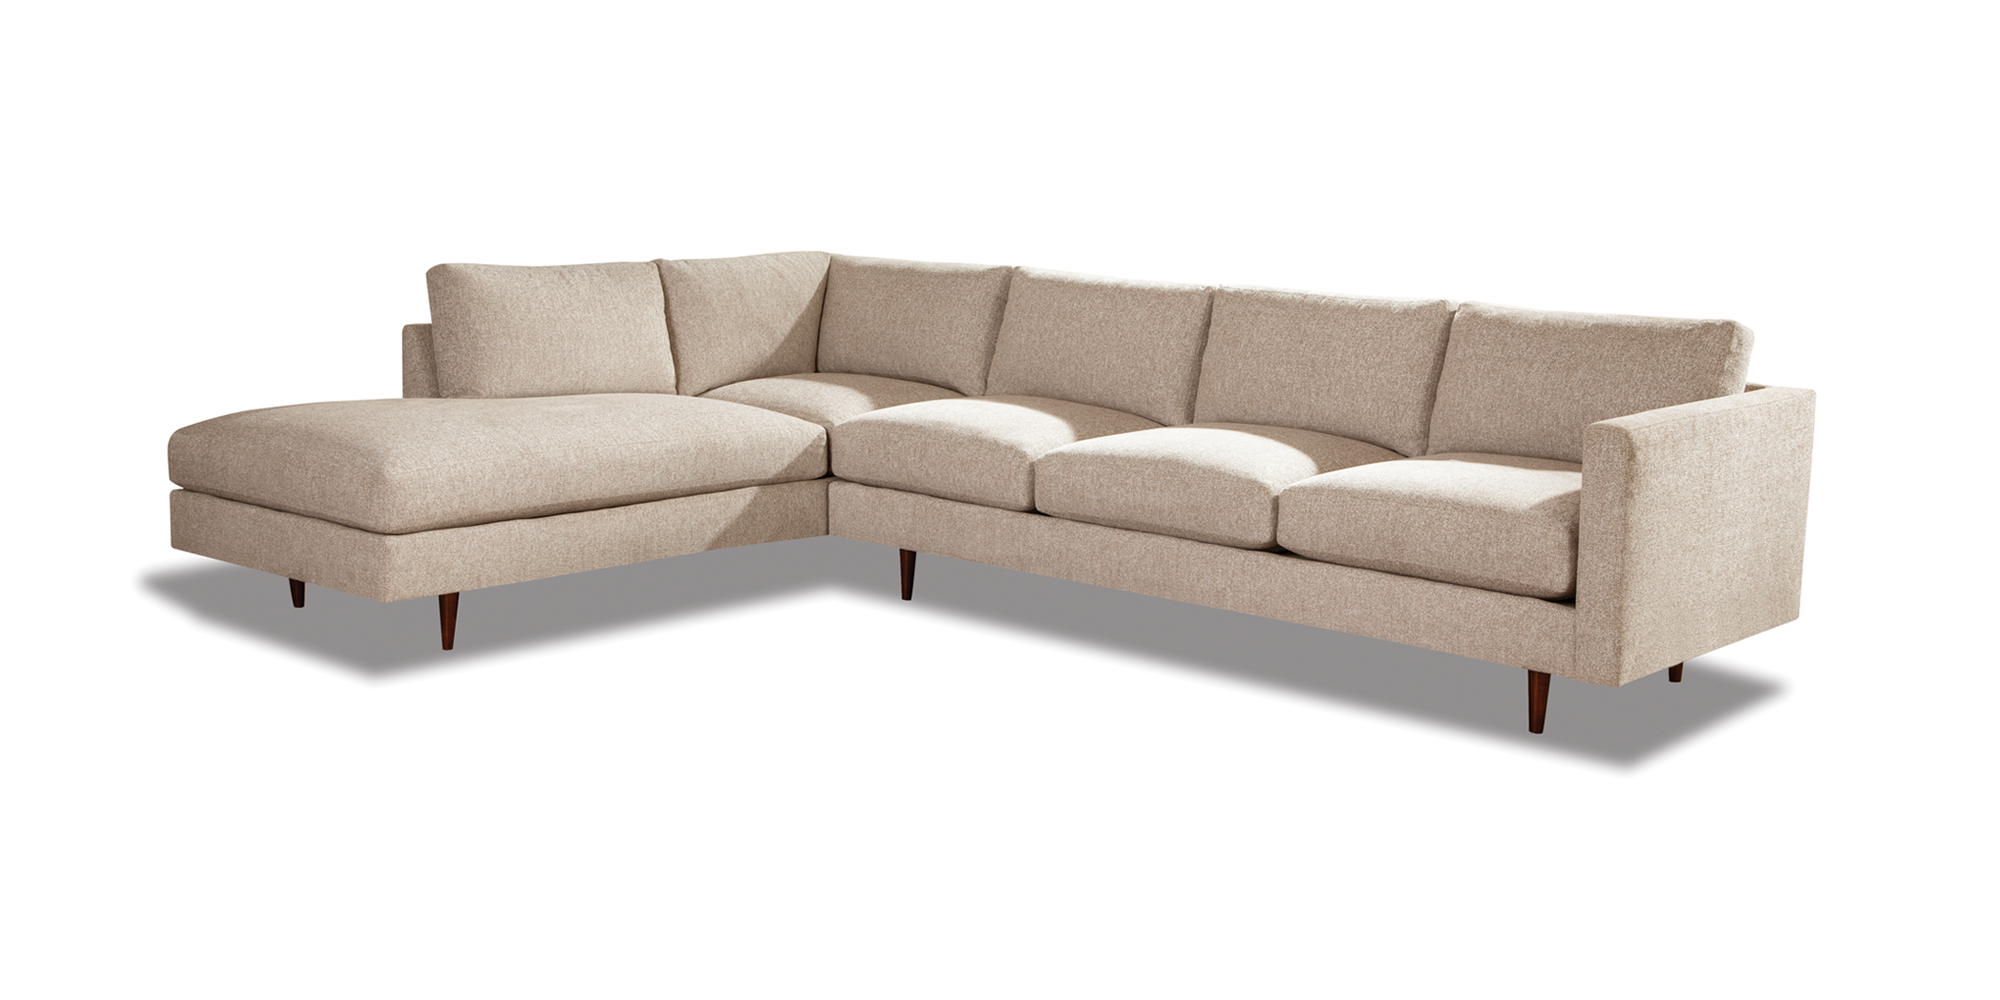 Phenomenal Thayer Coggin Sectional Gallery Cjindustries Chair Design For Home Cjindustriesco